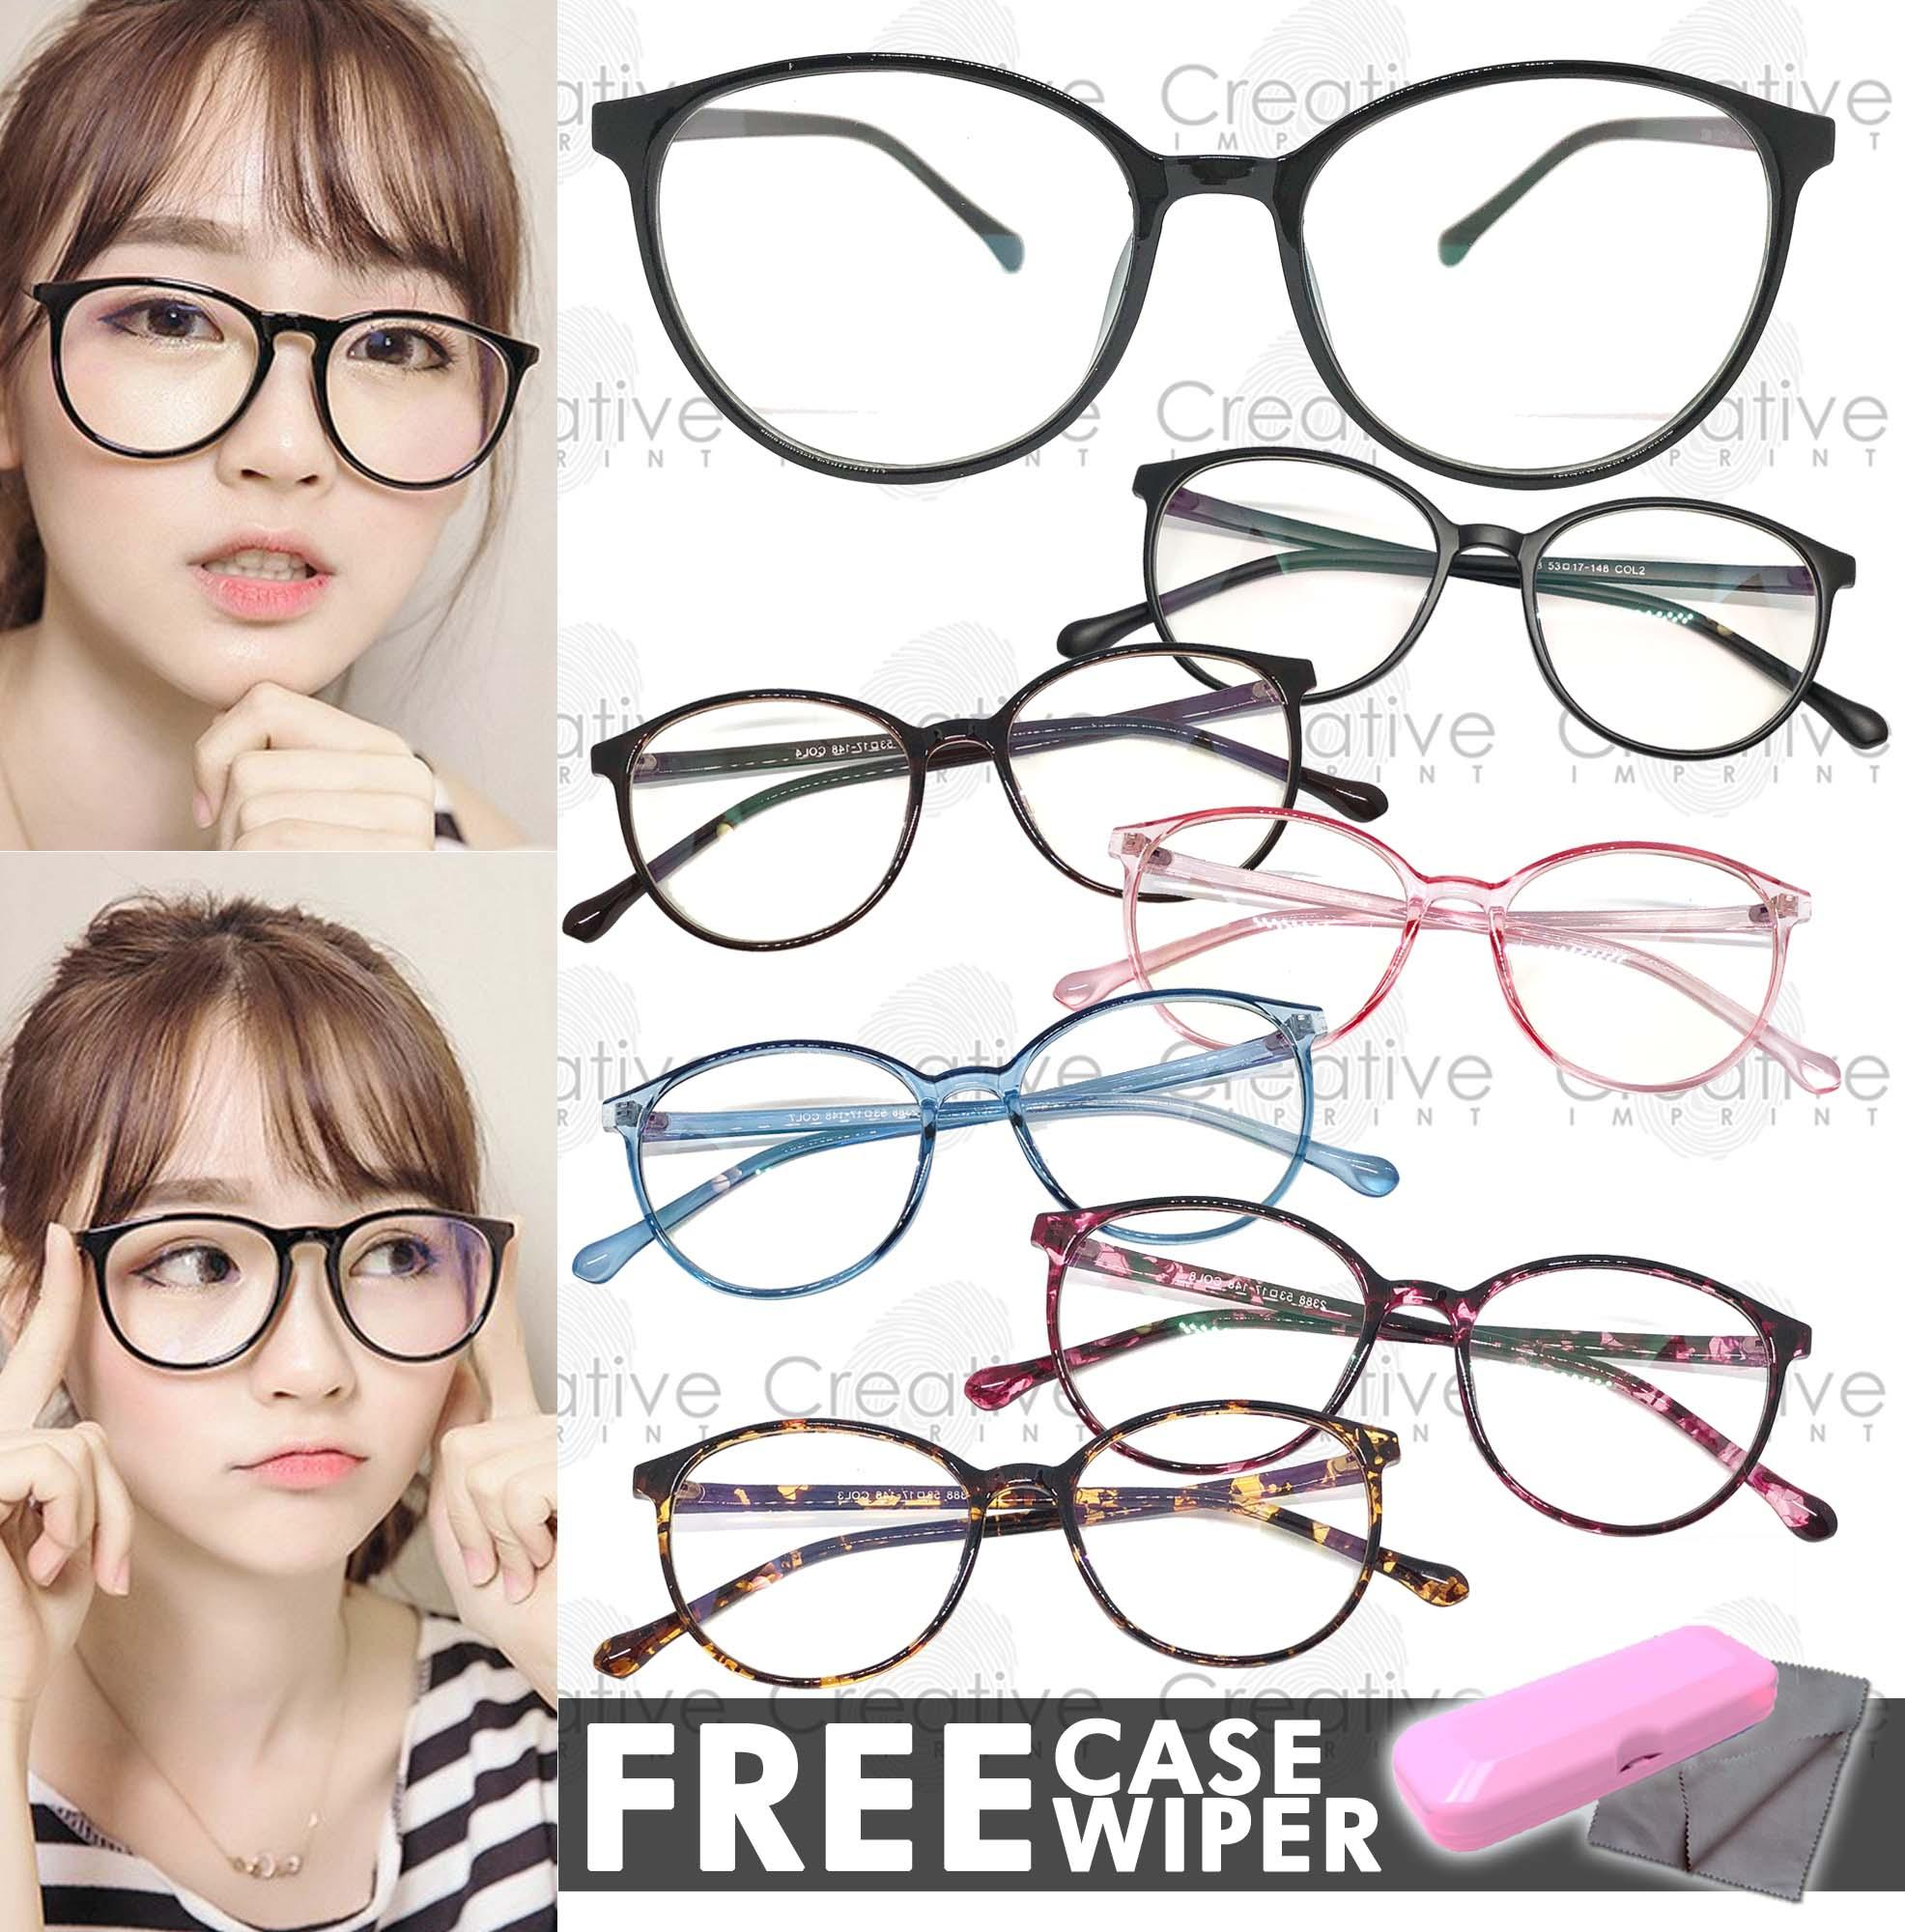 7c6edce10d2e Creative Imprint Eyeglasses Anti-Radiation Lens Anti-Fatigue Anti-Blue  Light Flexible Computer